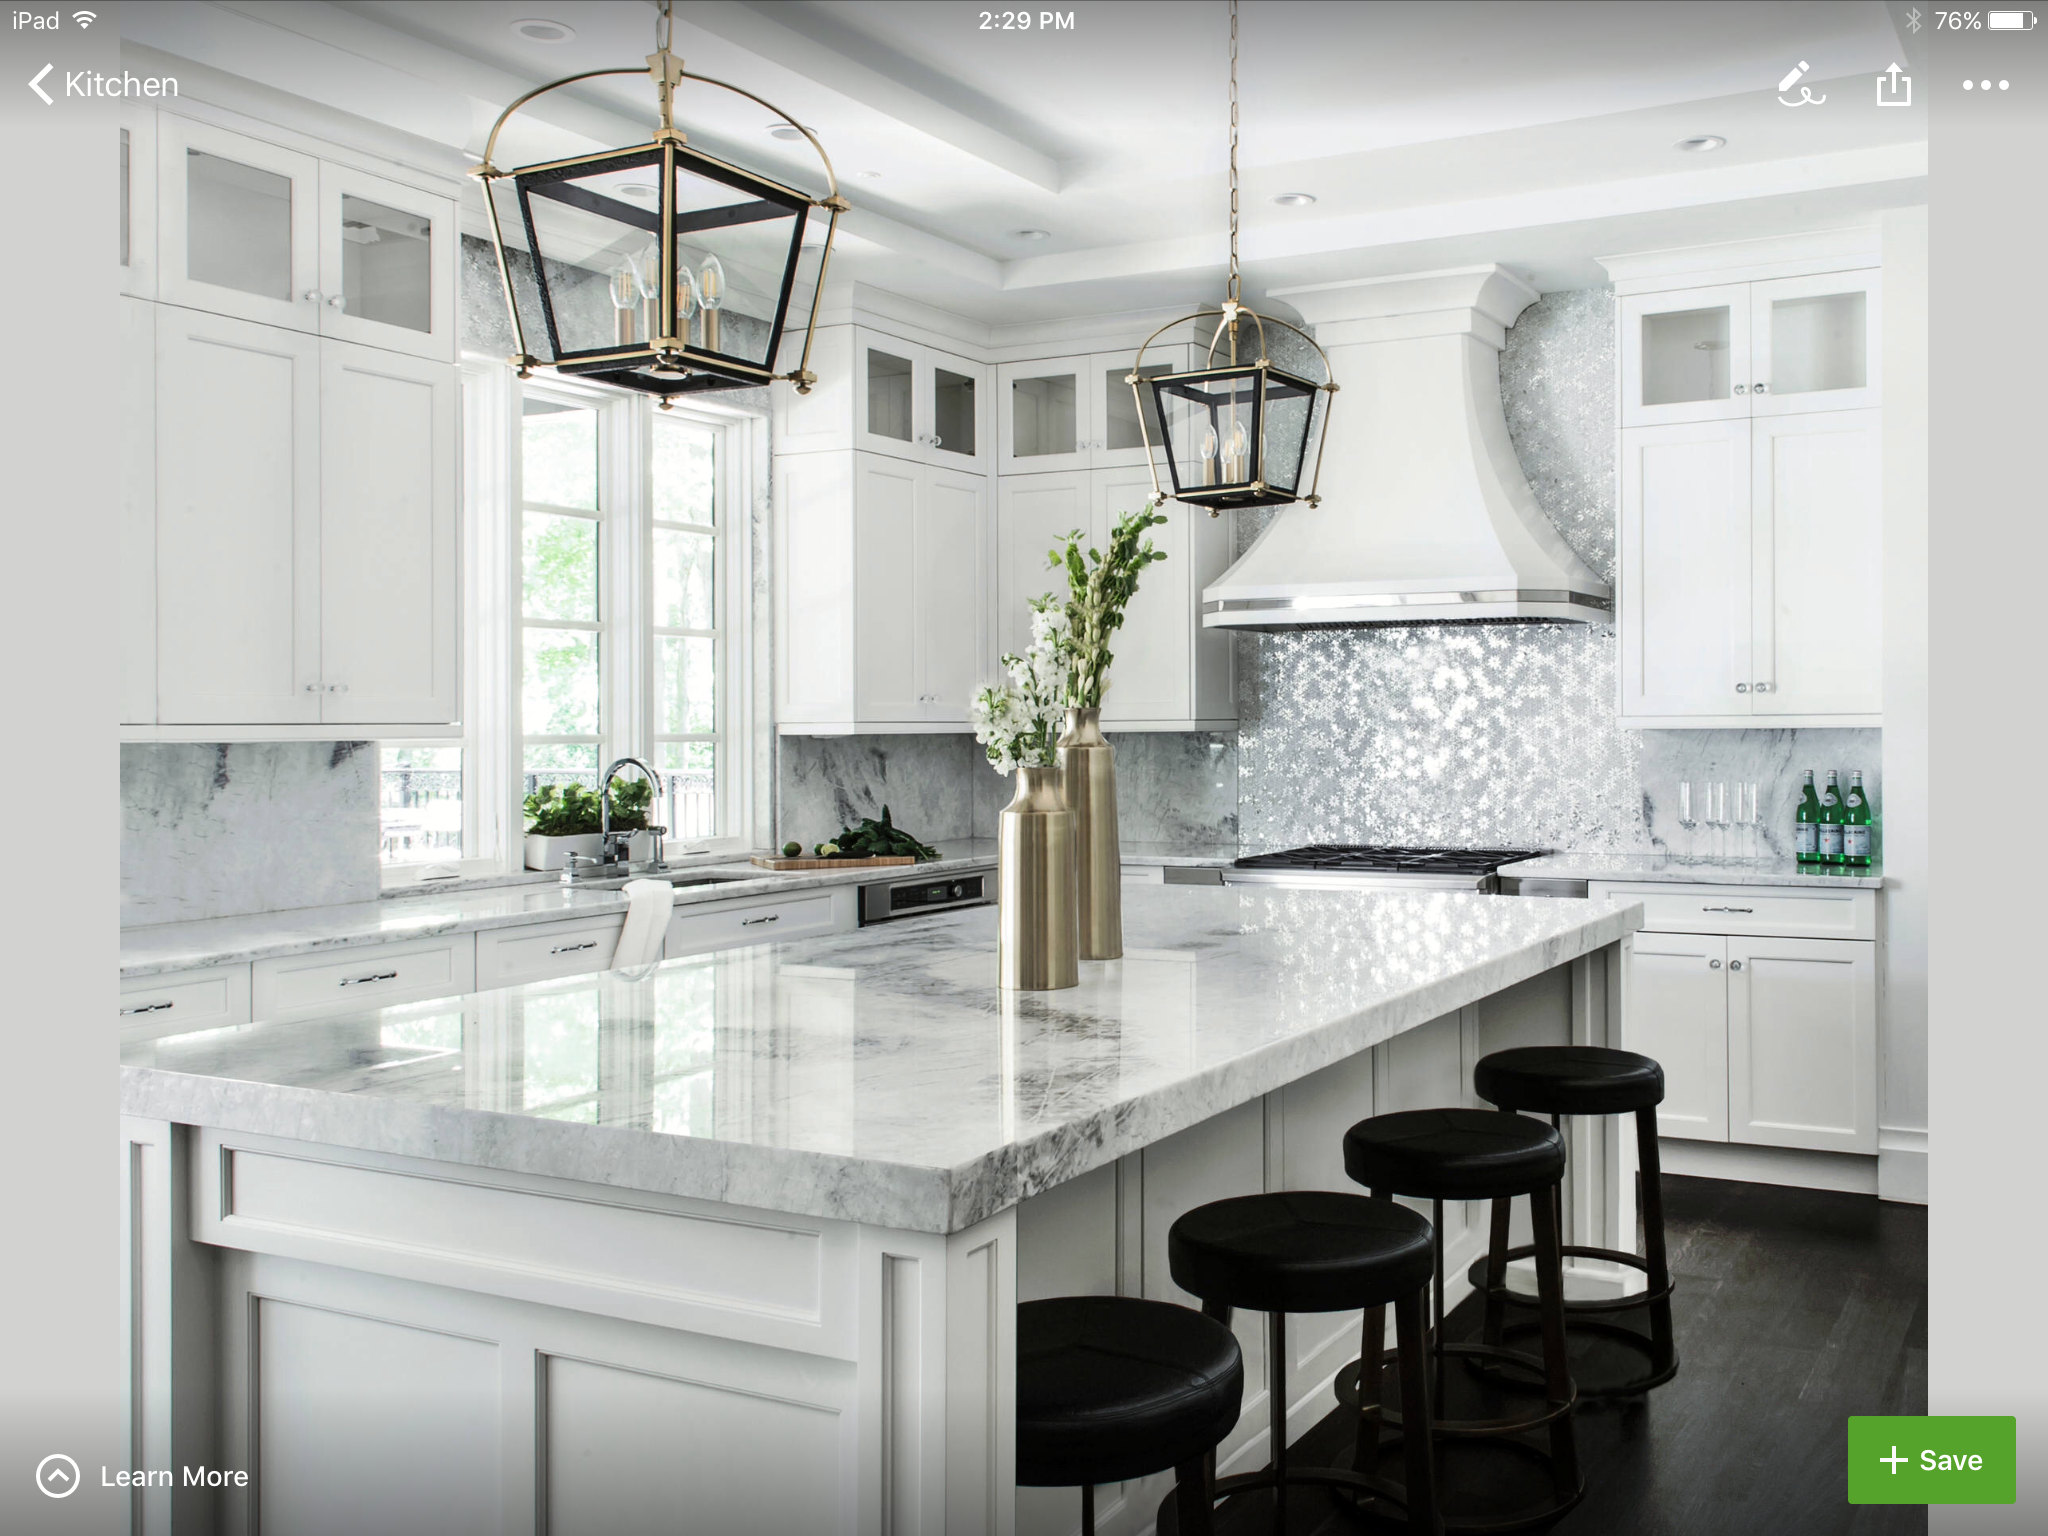 I liked the backsplash tiles and the island | HOME ♥ KITCHEN ...